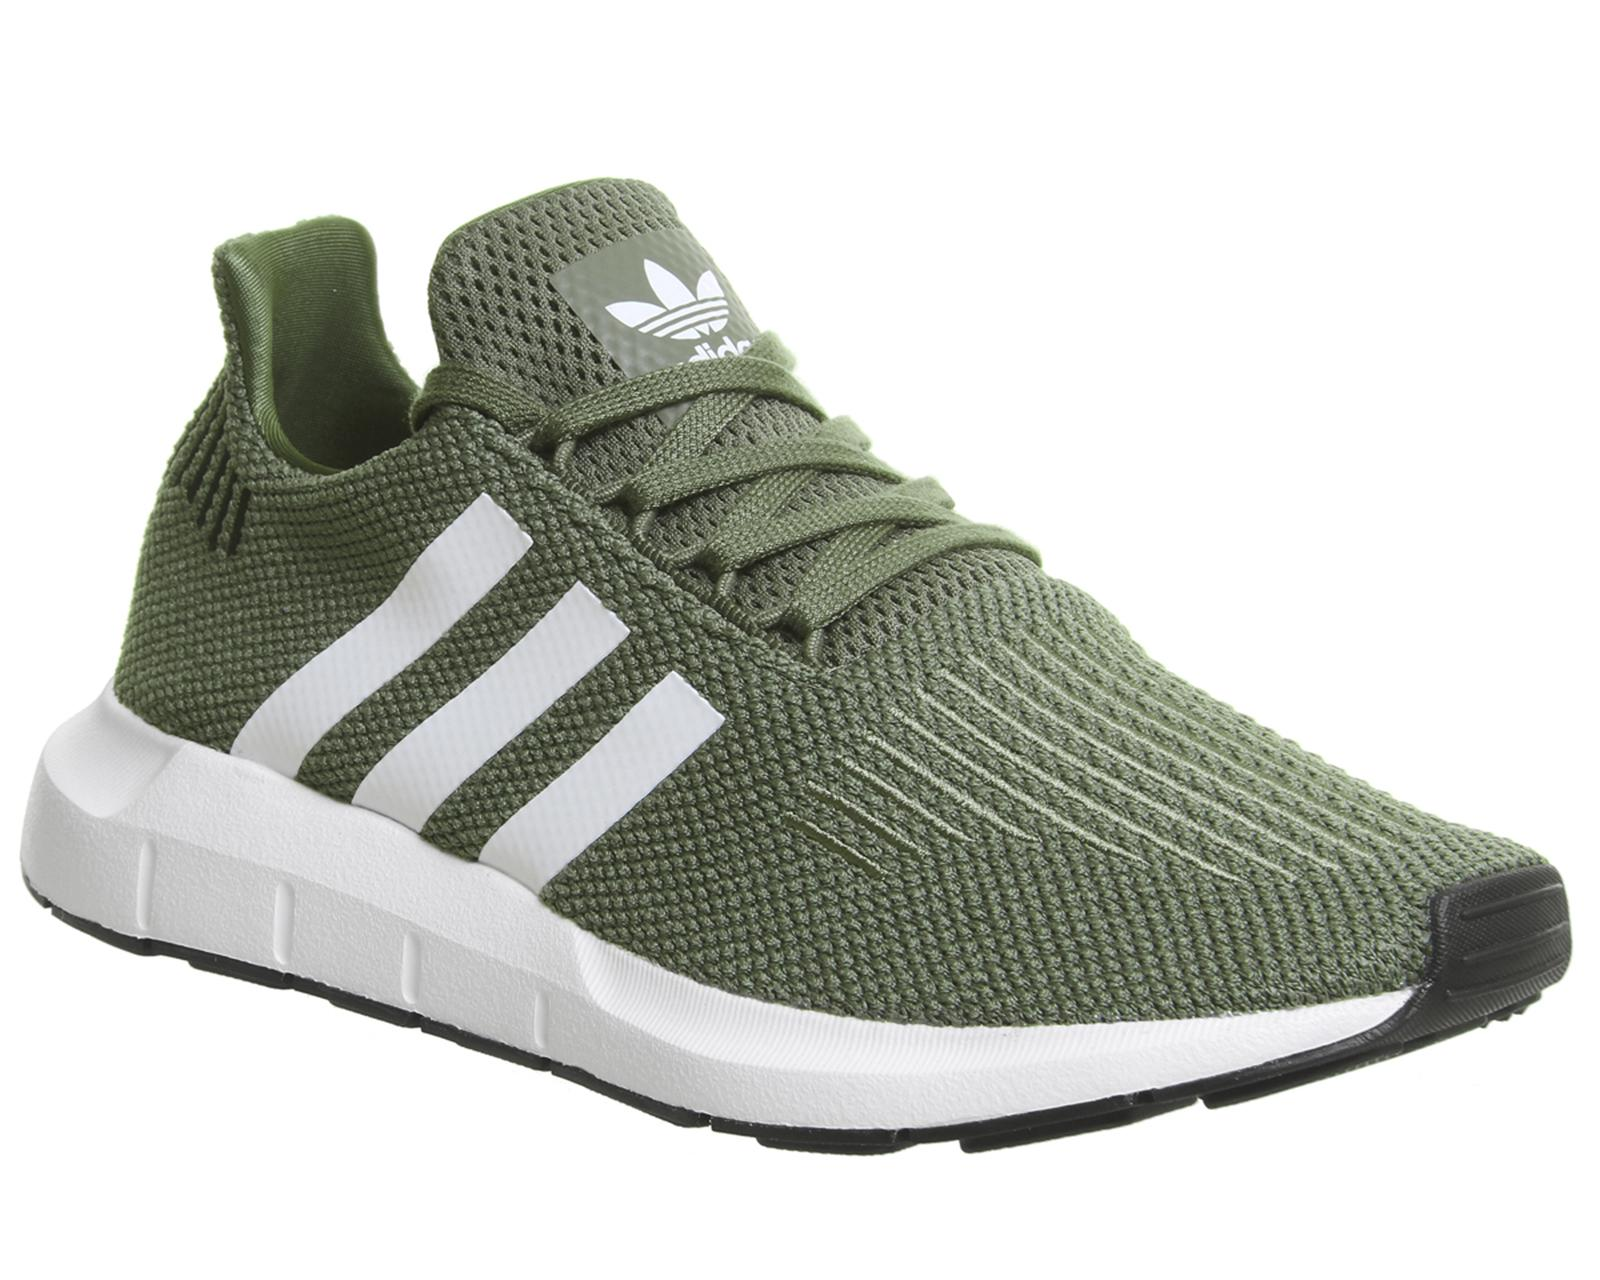 0c84a723e adidas Swift Run Trainers in Green - Lyst